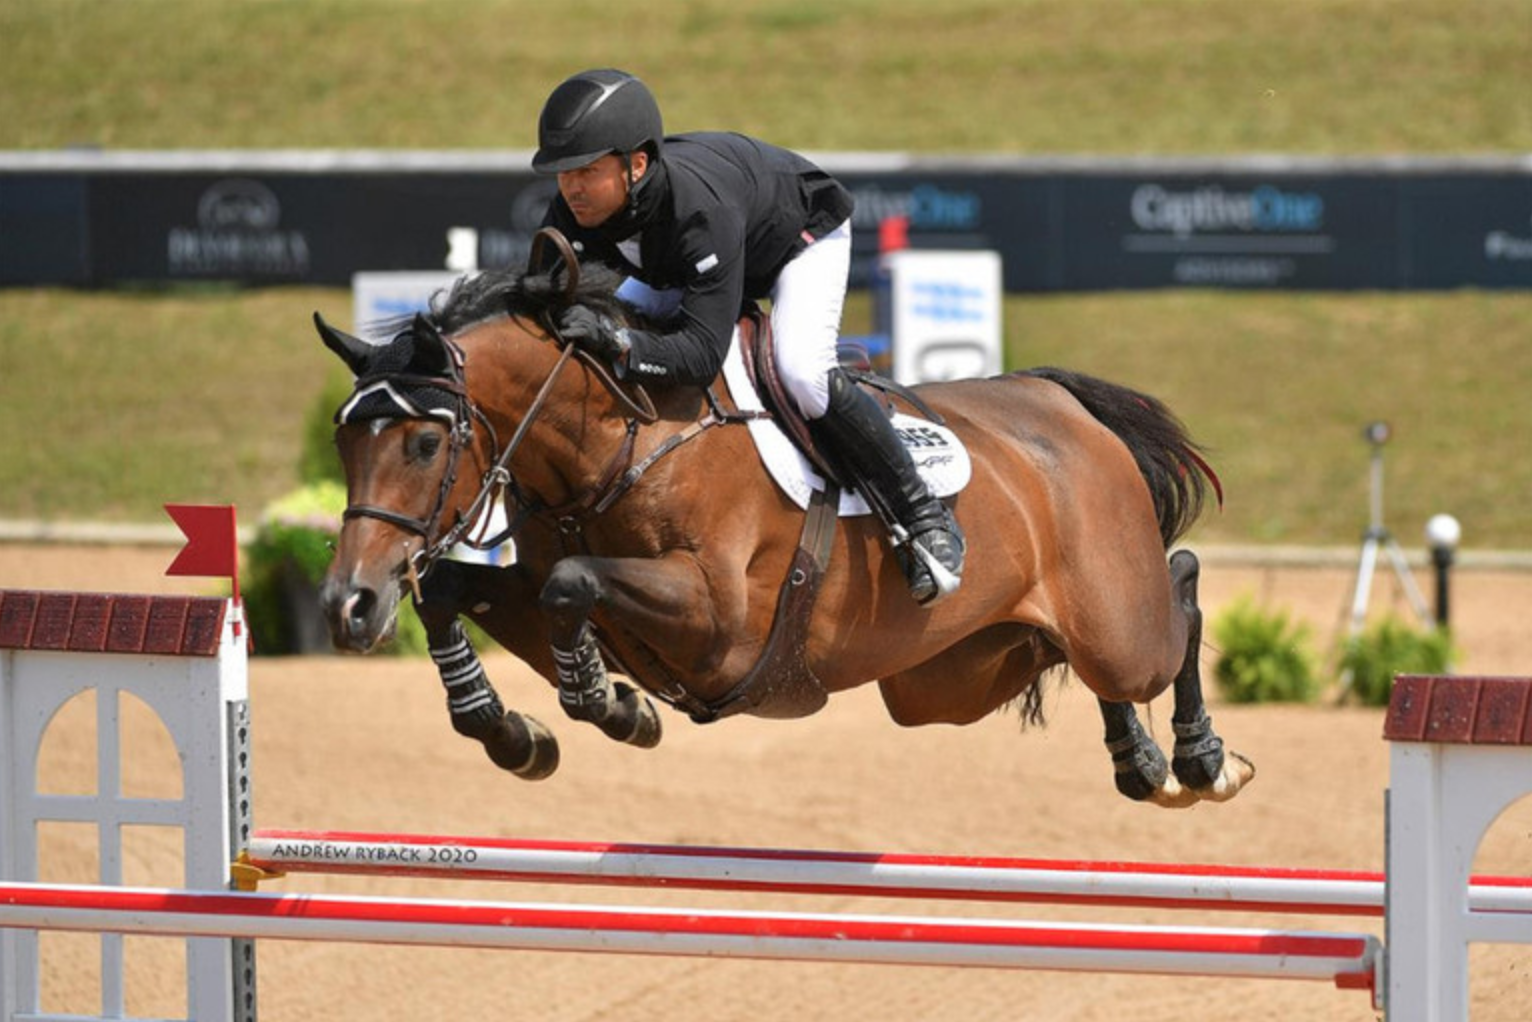 Kent Farrington and Austria 2 accelerate to victory in $36,600 CWD Welcome Stake CSI3*